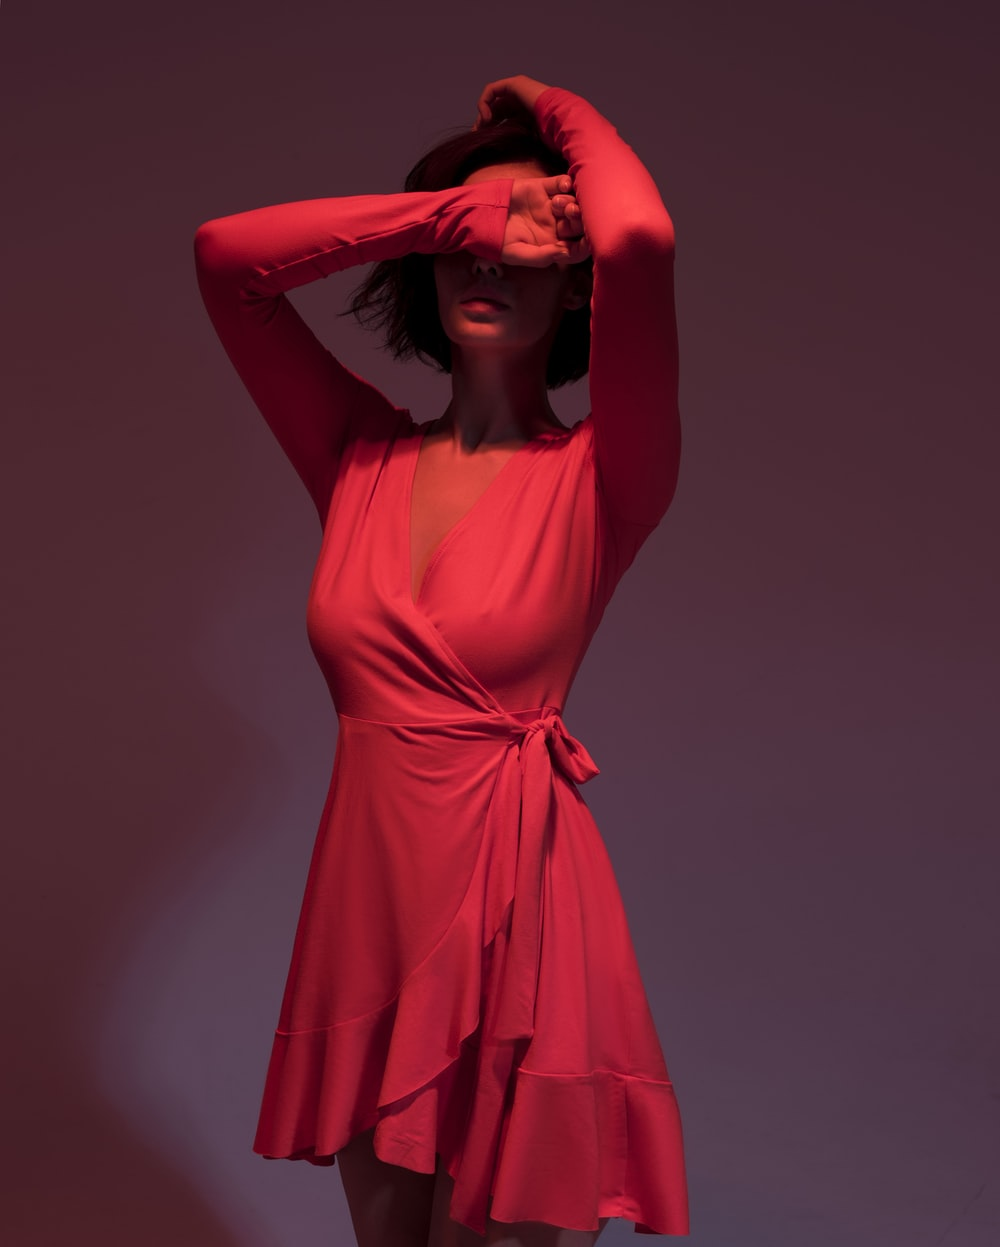 woman wearing pink long-sleeved dress covering her face